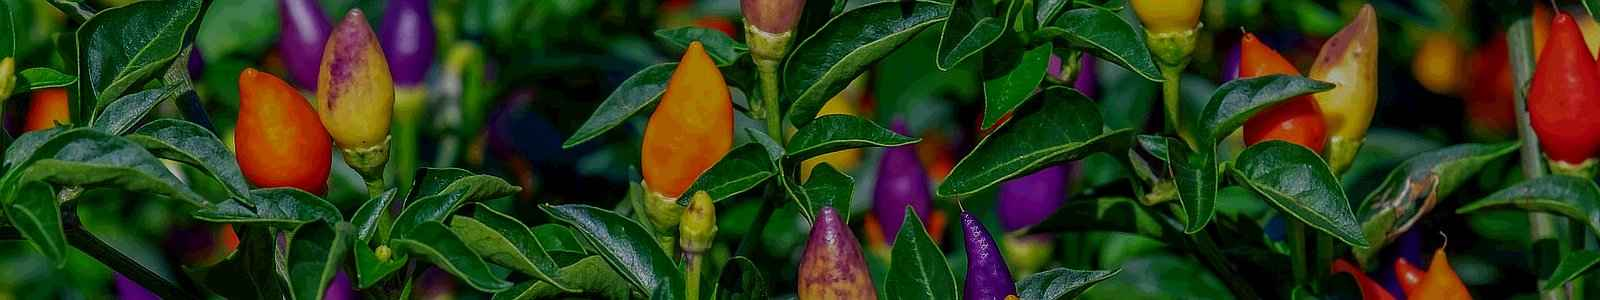 Vegetable Garden Plants - Cultivation of Hot Chili Pepper